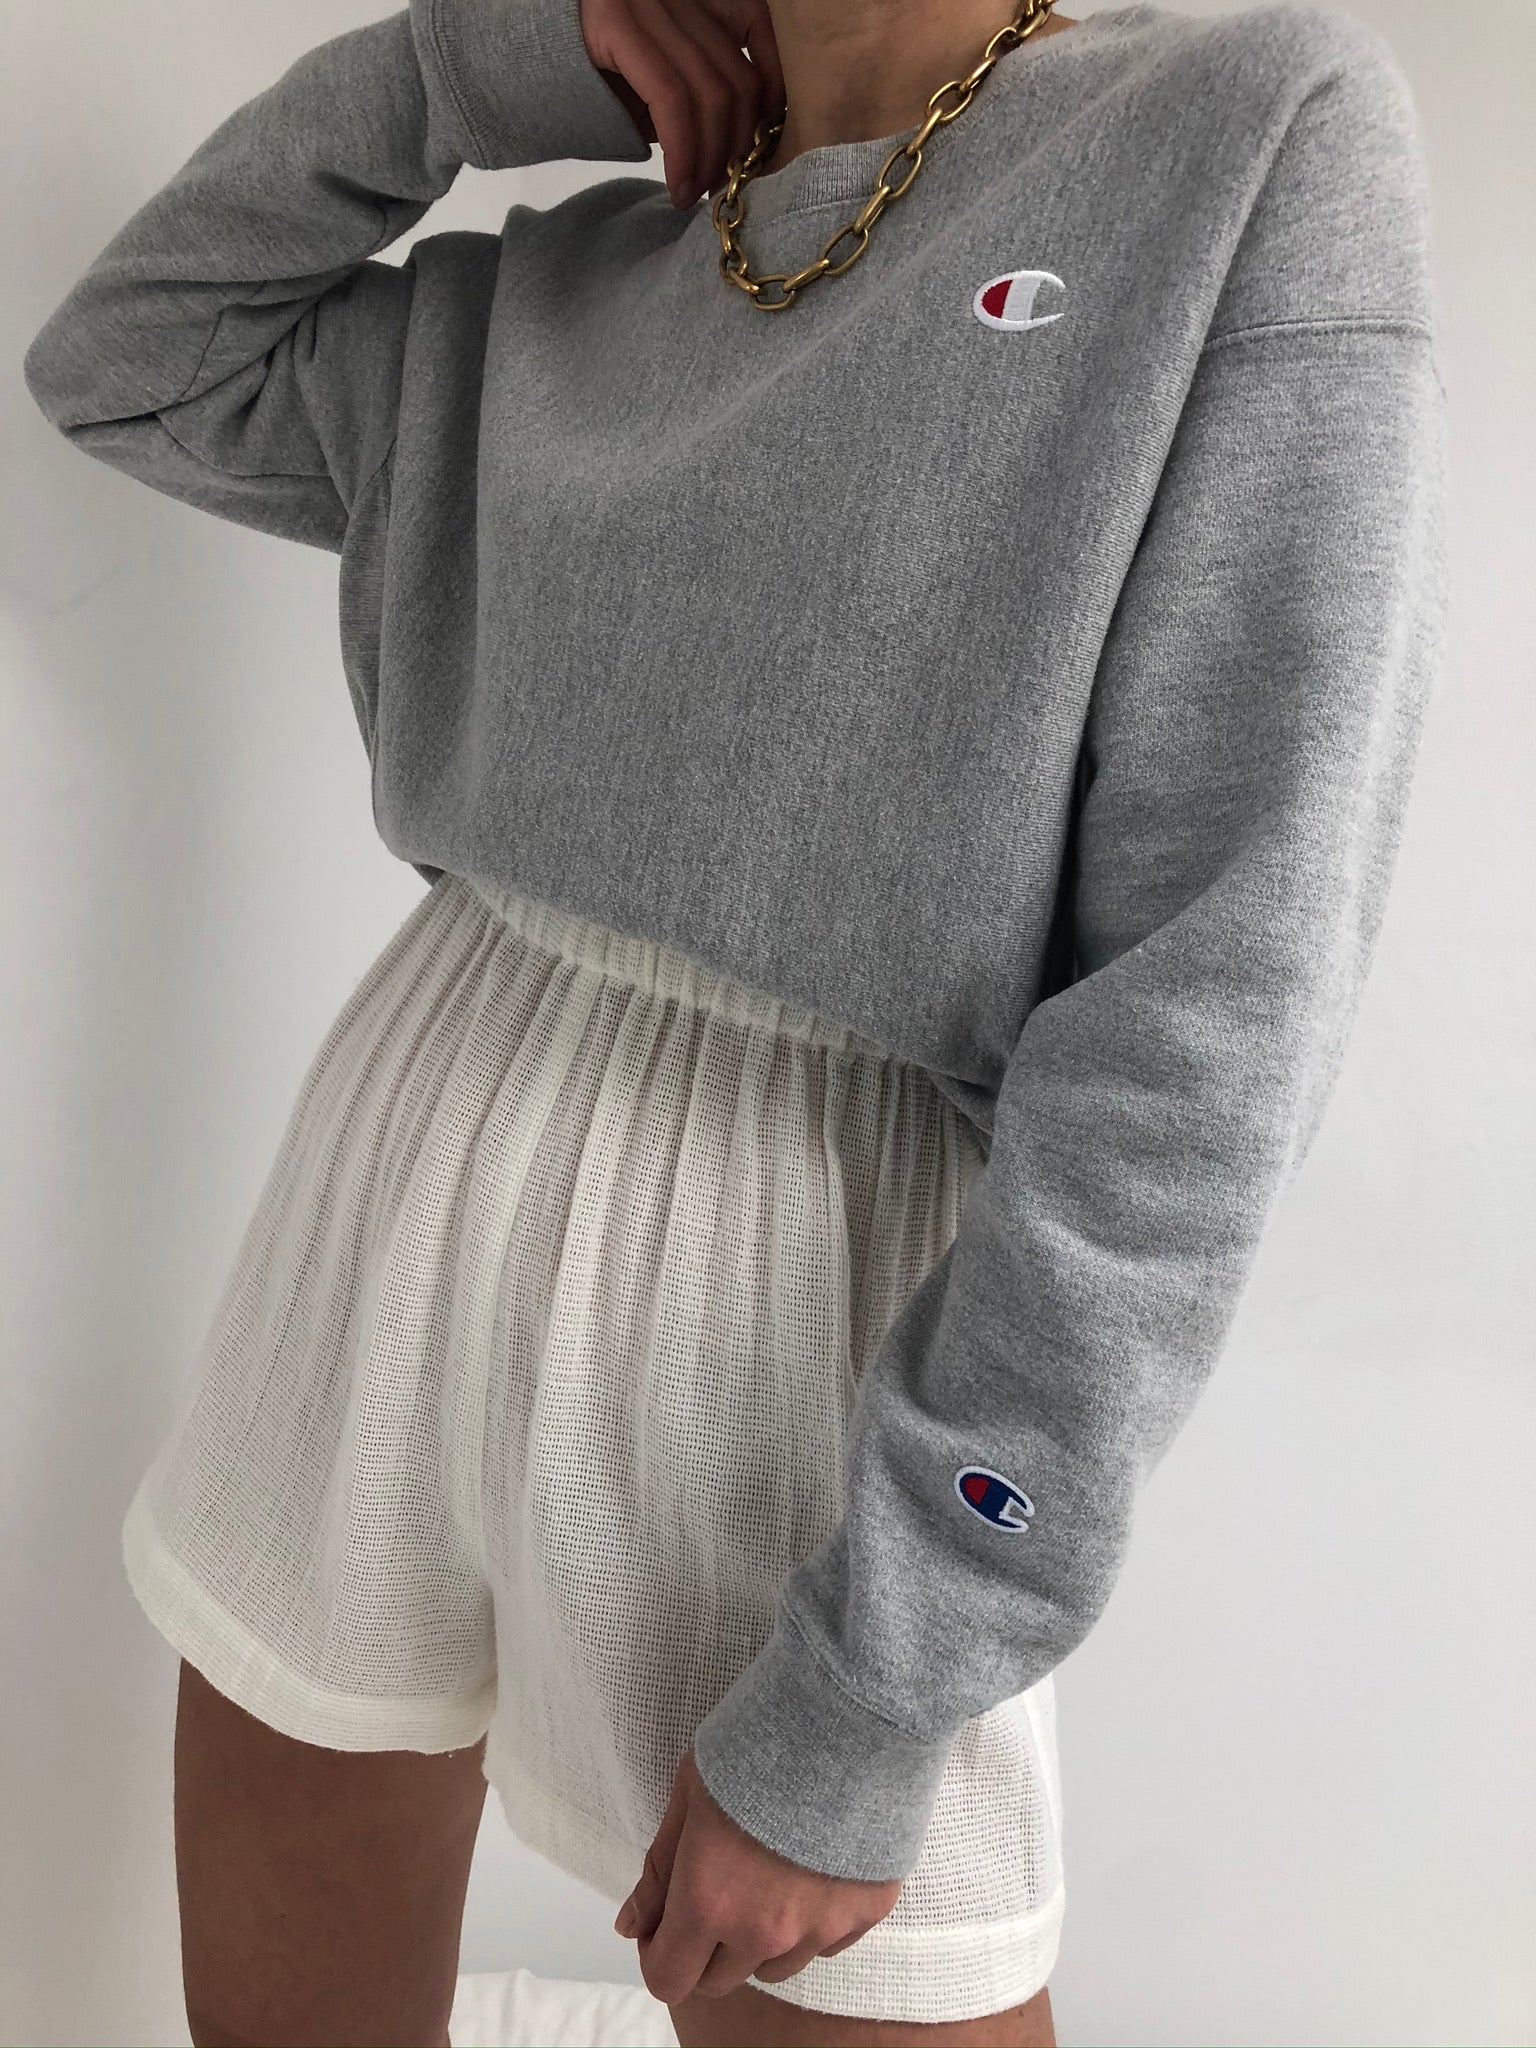 Vintage Grey Champion Reverse Weave Pullover